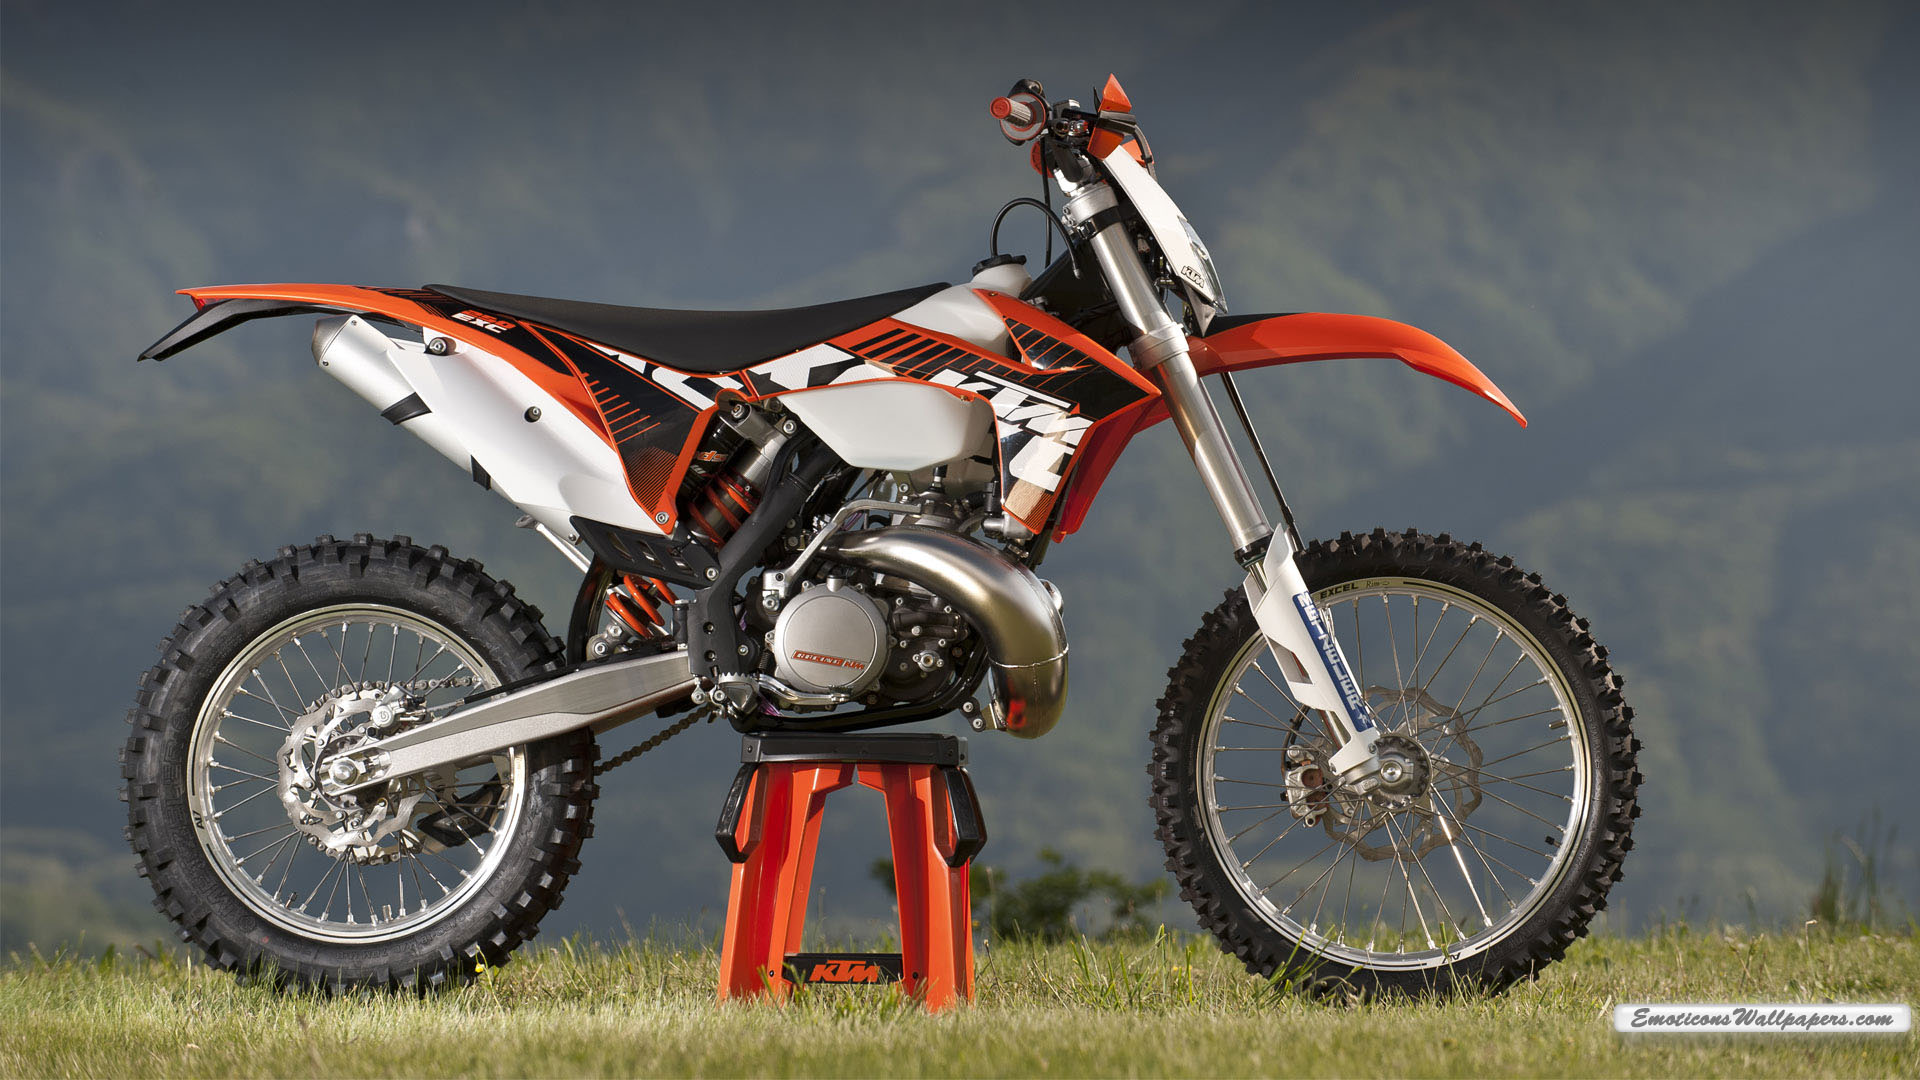 KTM 250 EXC 2012 11 Wallpapers Desktop Wallpapers HD 1920x1080